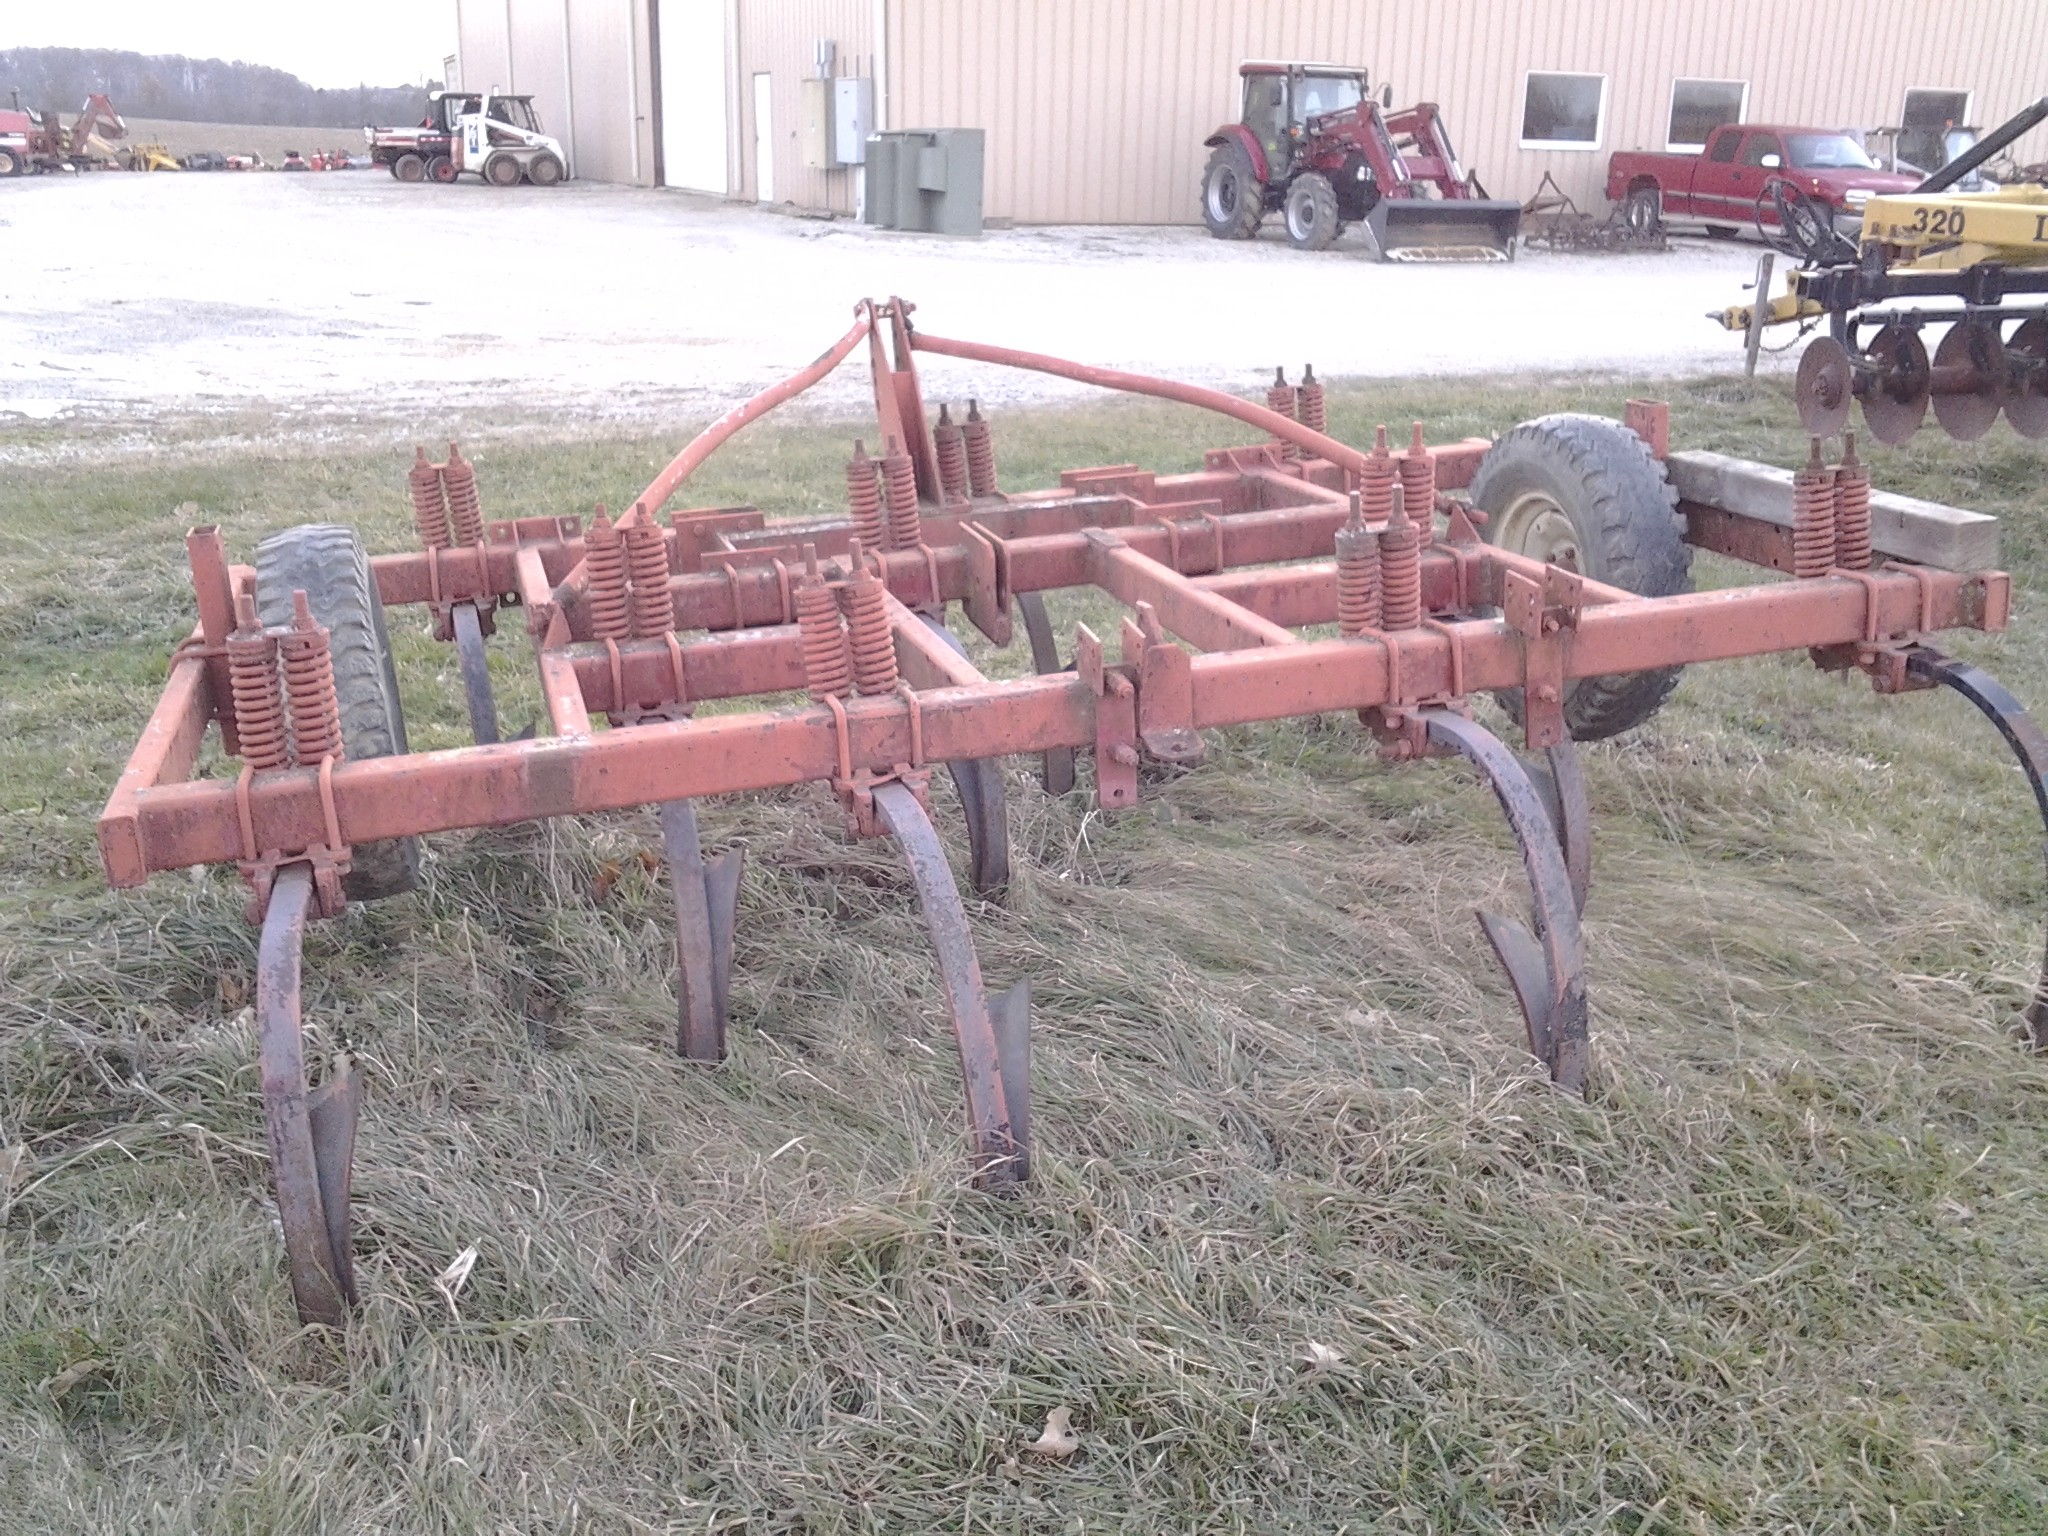 Used, 0, Other, 10 Shank Chisel Plow, Agricultural Equipment